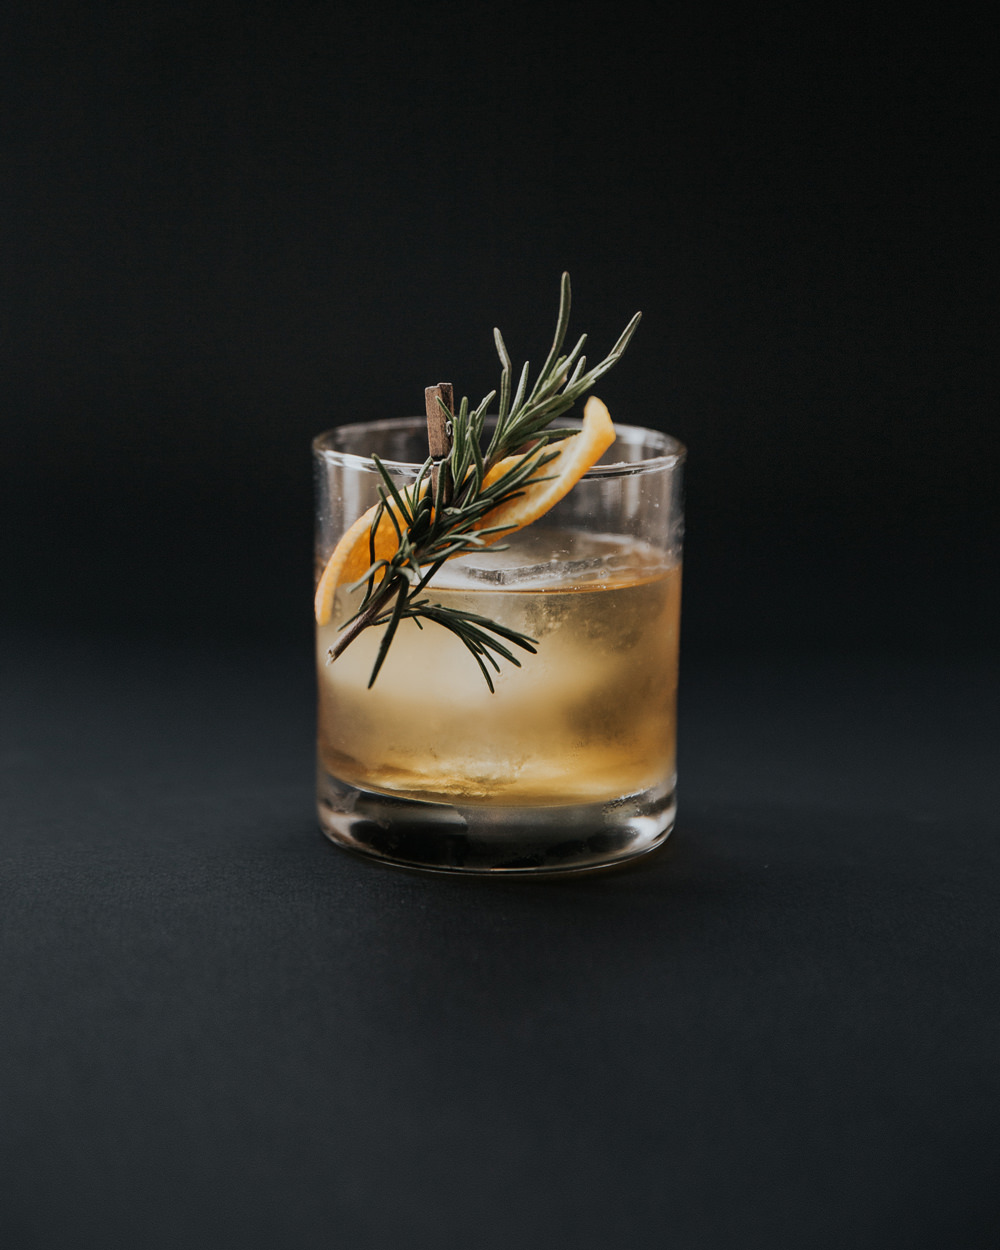 Aromatic - Cane & Abel - 1.5 oz Navy Strength Rum0.5oz Laphroaig 10yr Islay Scotch0.5oz Rosemary syrup2 dash Honest John Aromatic Bitters2 dash Honest John Orange BittersCombine all ingredients into an Old Fashioned glass. Place a single large ice cube into the glass, and stir until well chilled. Garnish with an orange twist and rosemary sprig.